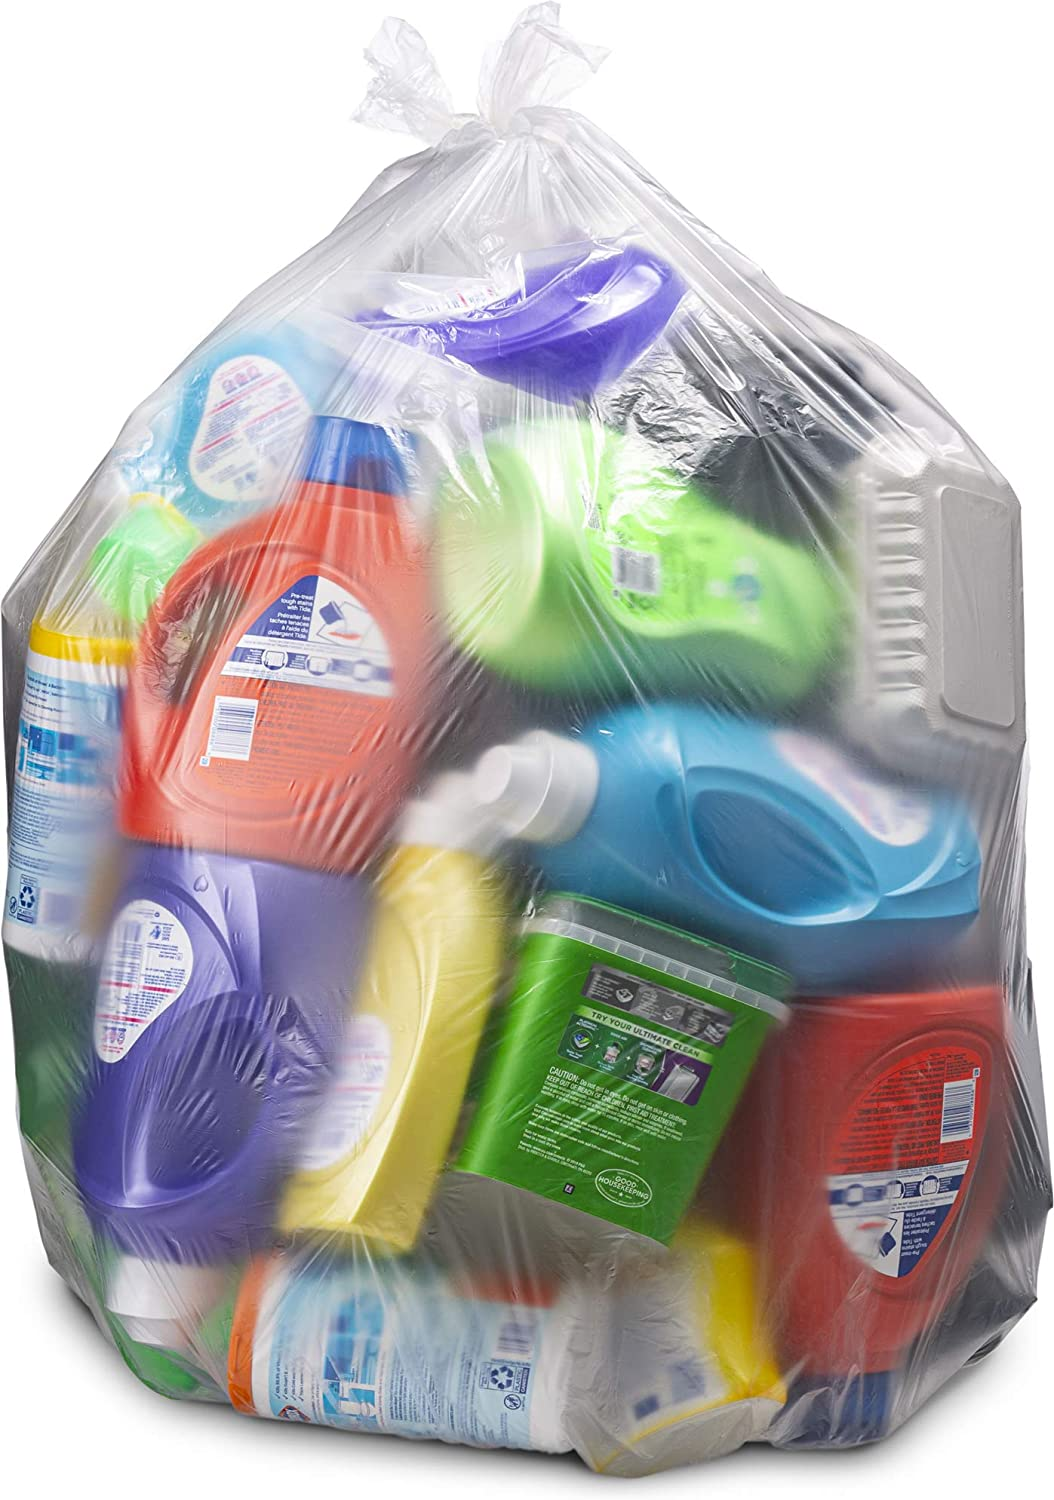 Clear Trash Bags 65 Gallon, (50 Count w/Ties) Clear Recycling Plastic Garbage Bags